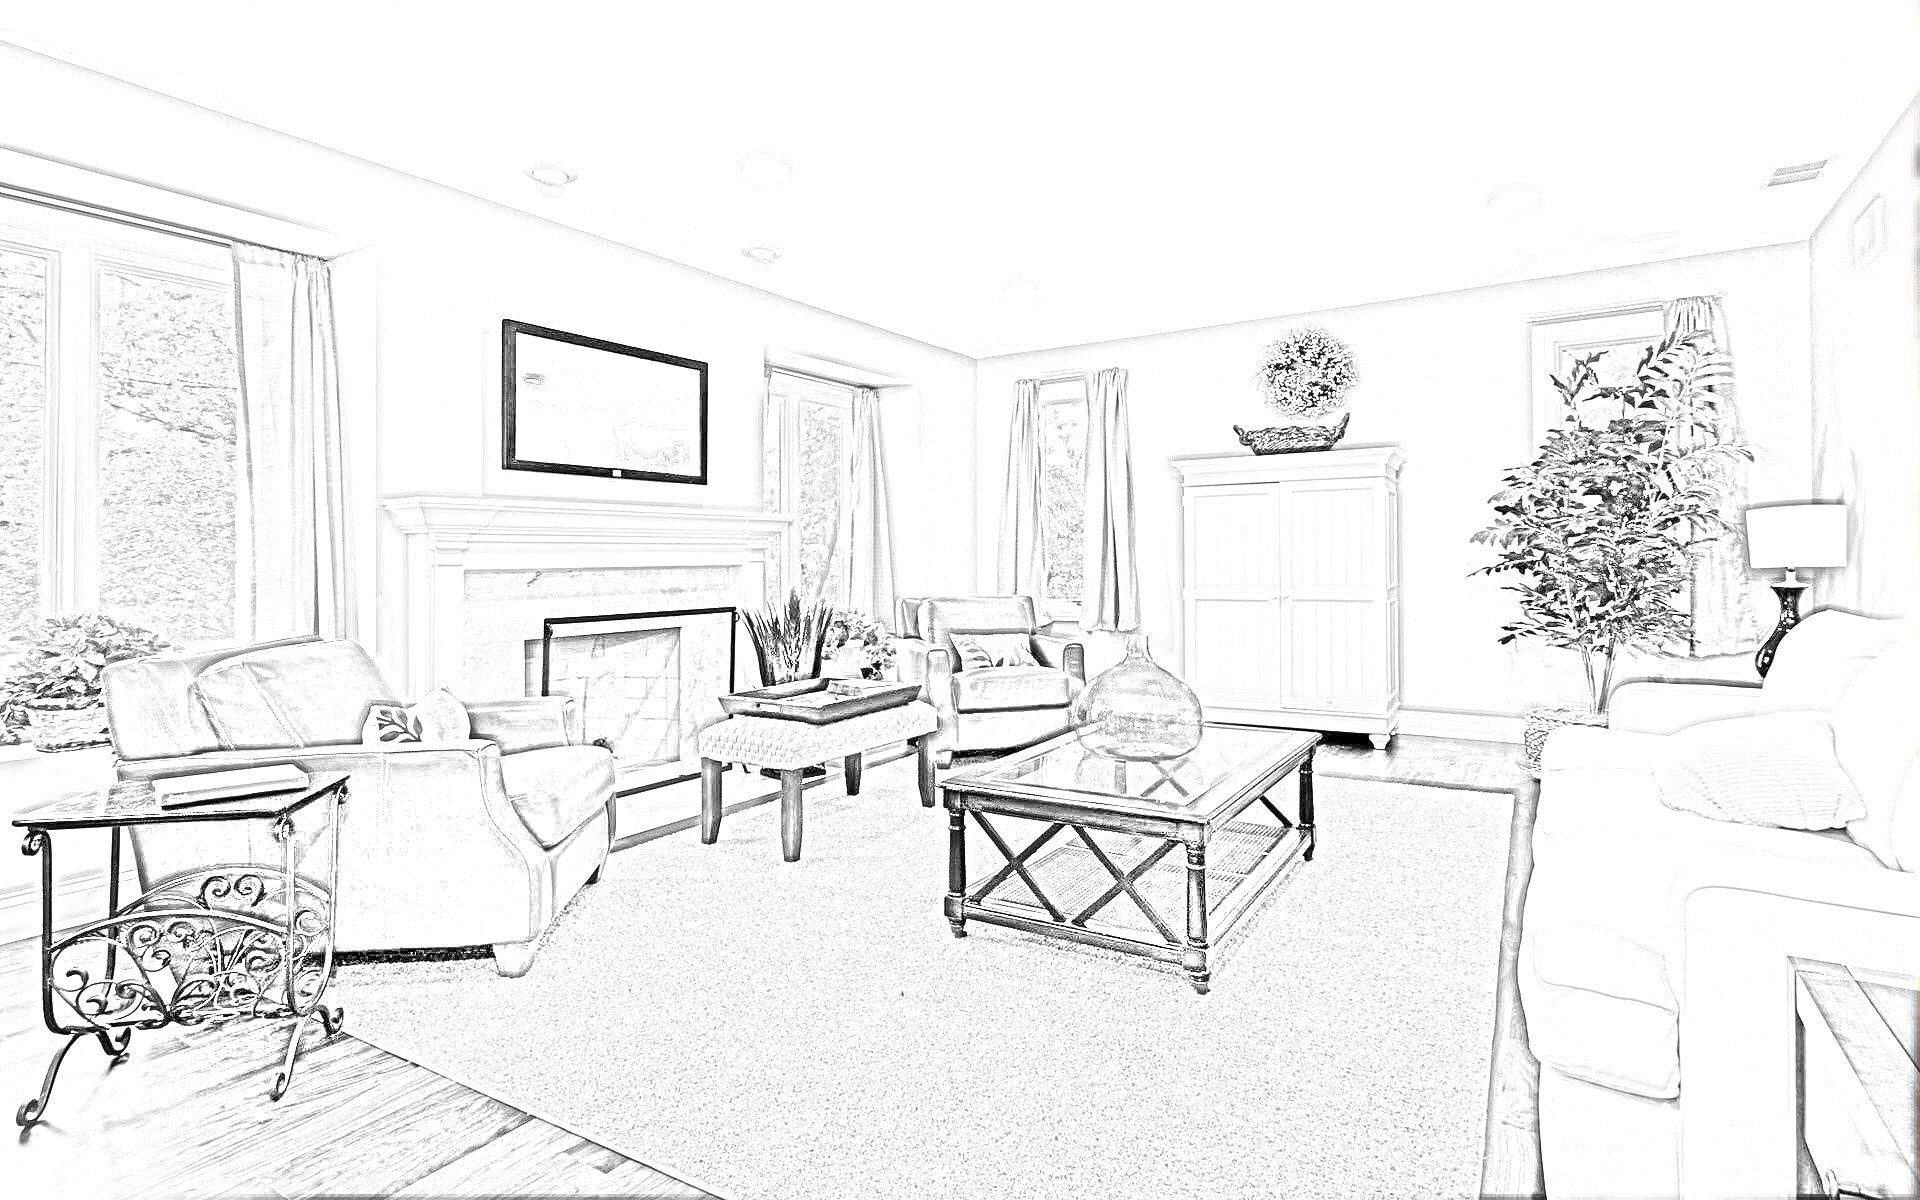 How to do interior design sketches bqtmpph stunning Room sketches interior design